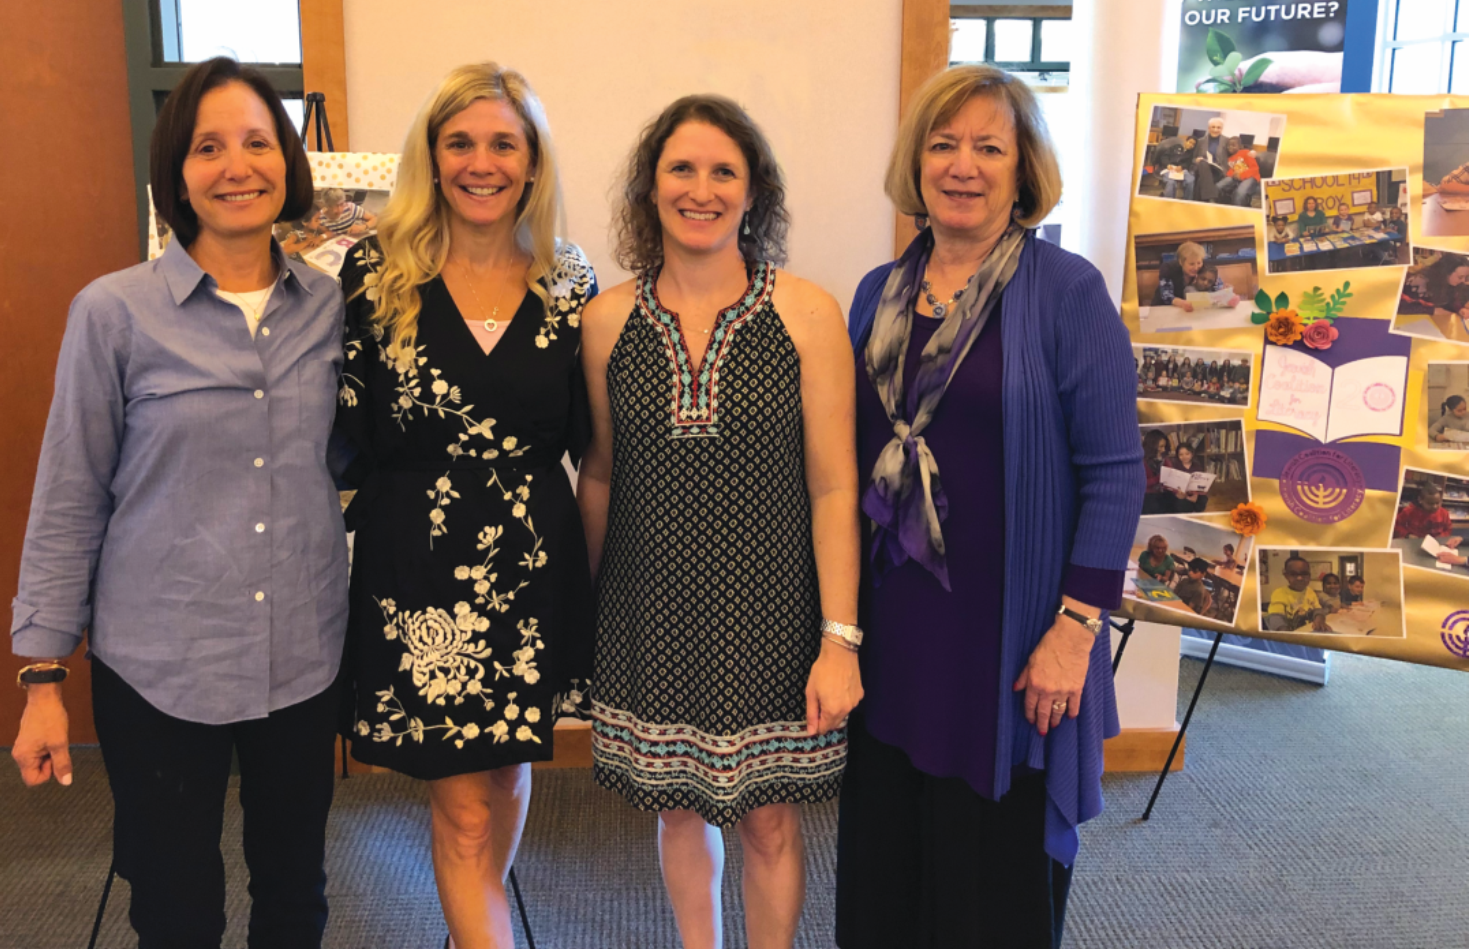 Lauren Iselin, Robyn Easton, Shelly Shapiro, and a guest speaker smiling for a picture